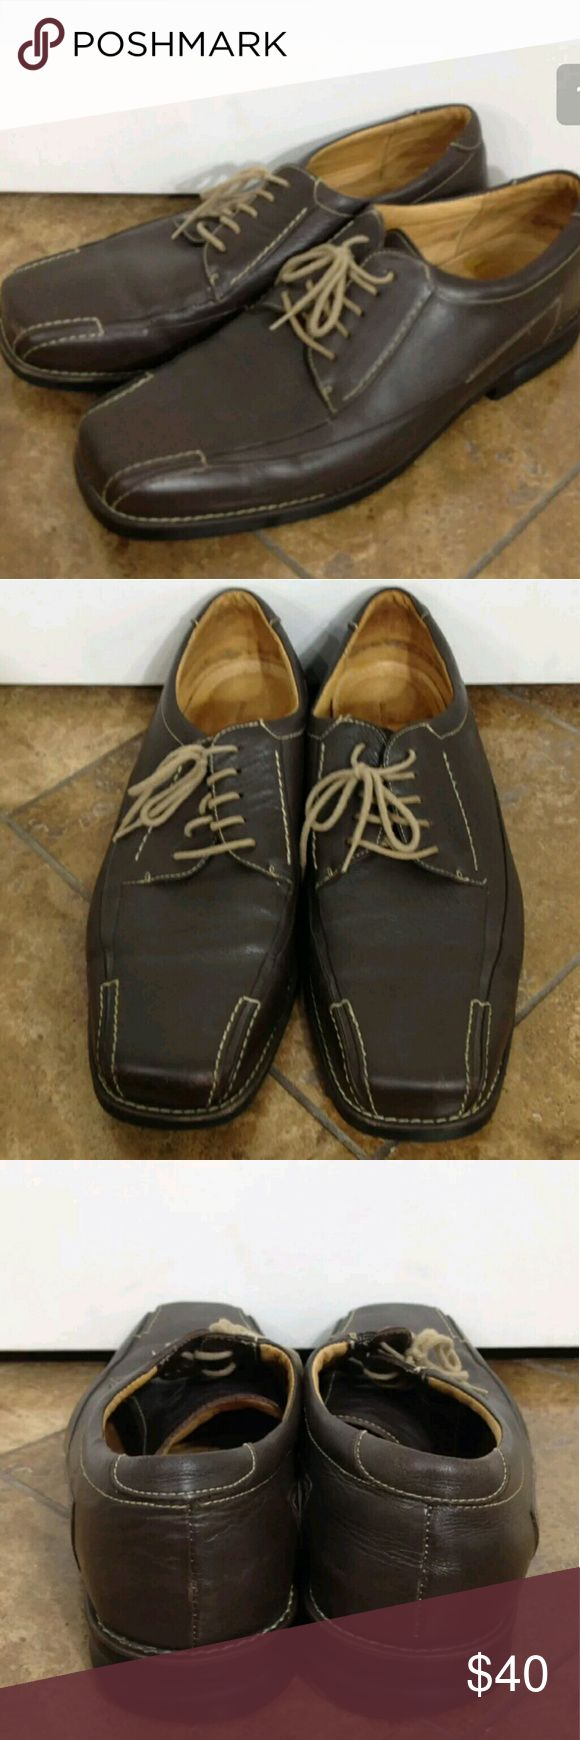 Sandro Moscoloni Vineyard Dress Shoes 12 D Sandro Moscoloni Vineyard Dress Shoes Mens Brown Atomic Gel Business Casual Oxford Loafers Size 12 D - Ecellent preowned condition....Enjoy!   Type: Shoes Style: Atomic Gel Business Dress Casual Lace Up Oxford Loafers - Style# 5310 AM Brand: Sandro Moscoloni Vineyard Size: 12 D Material: Leather Color: Brown Condition: Excellent Preowned Condition  Country of Manufacturer: Brazil  Stock Number: 0014 Sandro Moscoloni Shoes Loafers & Slip-Ons